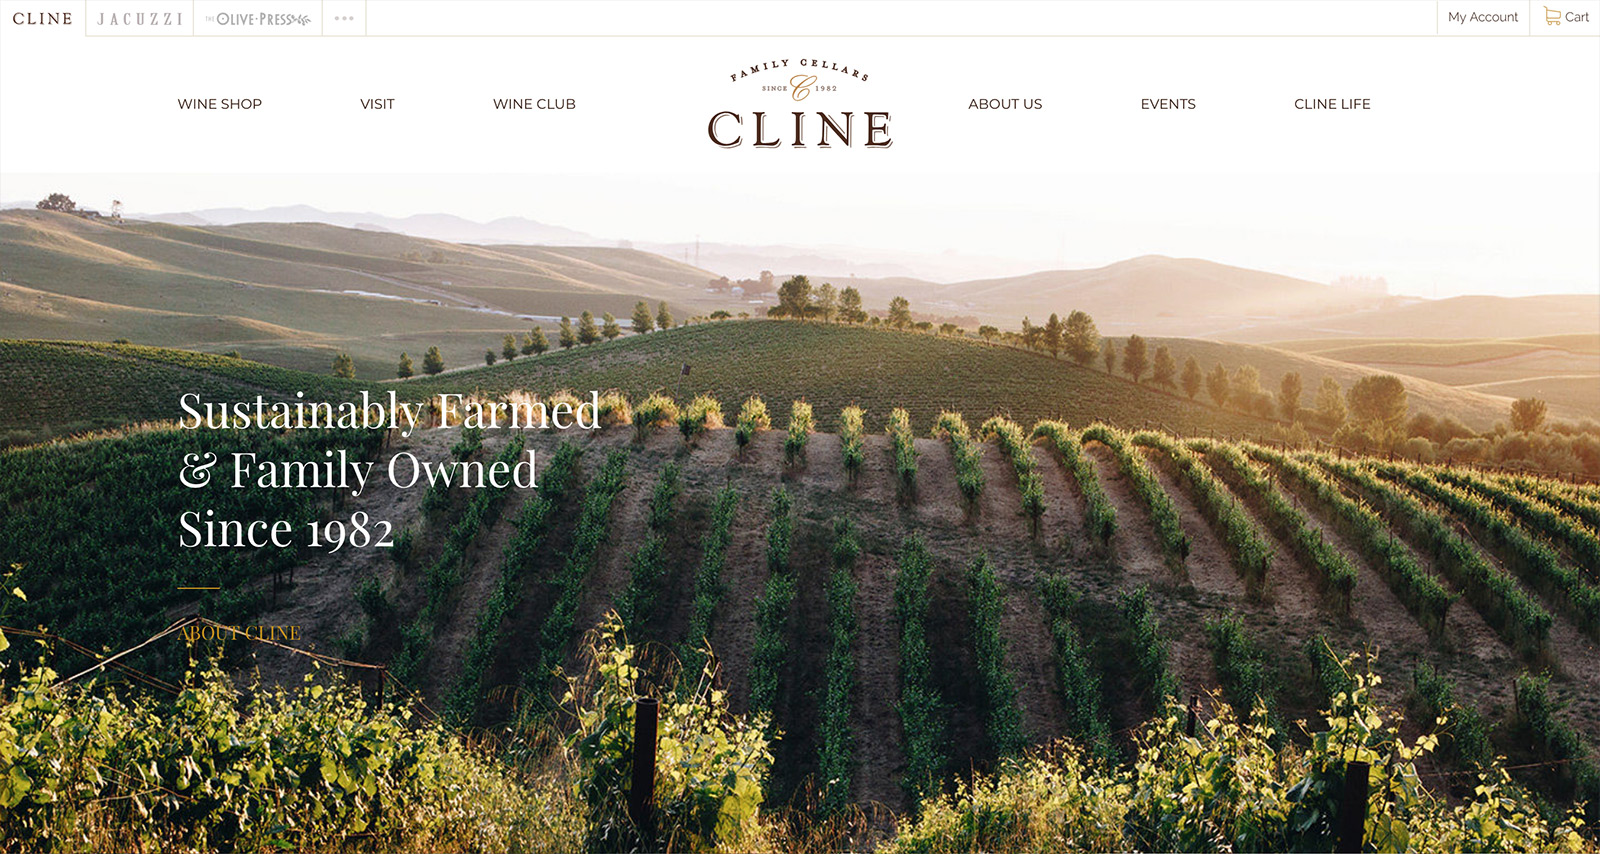 The home page for Cline Cellars